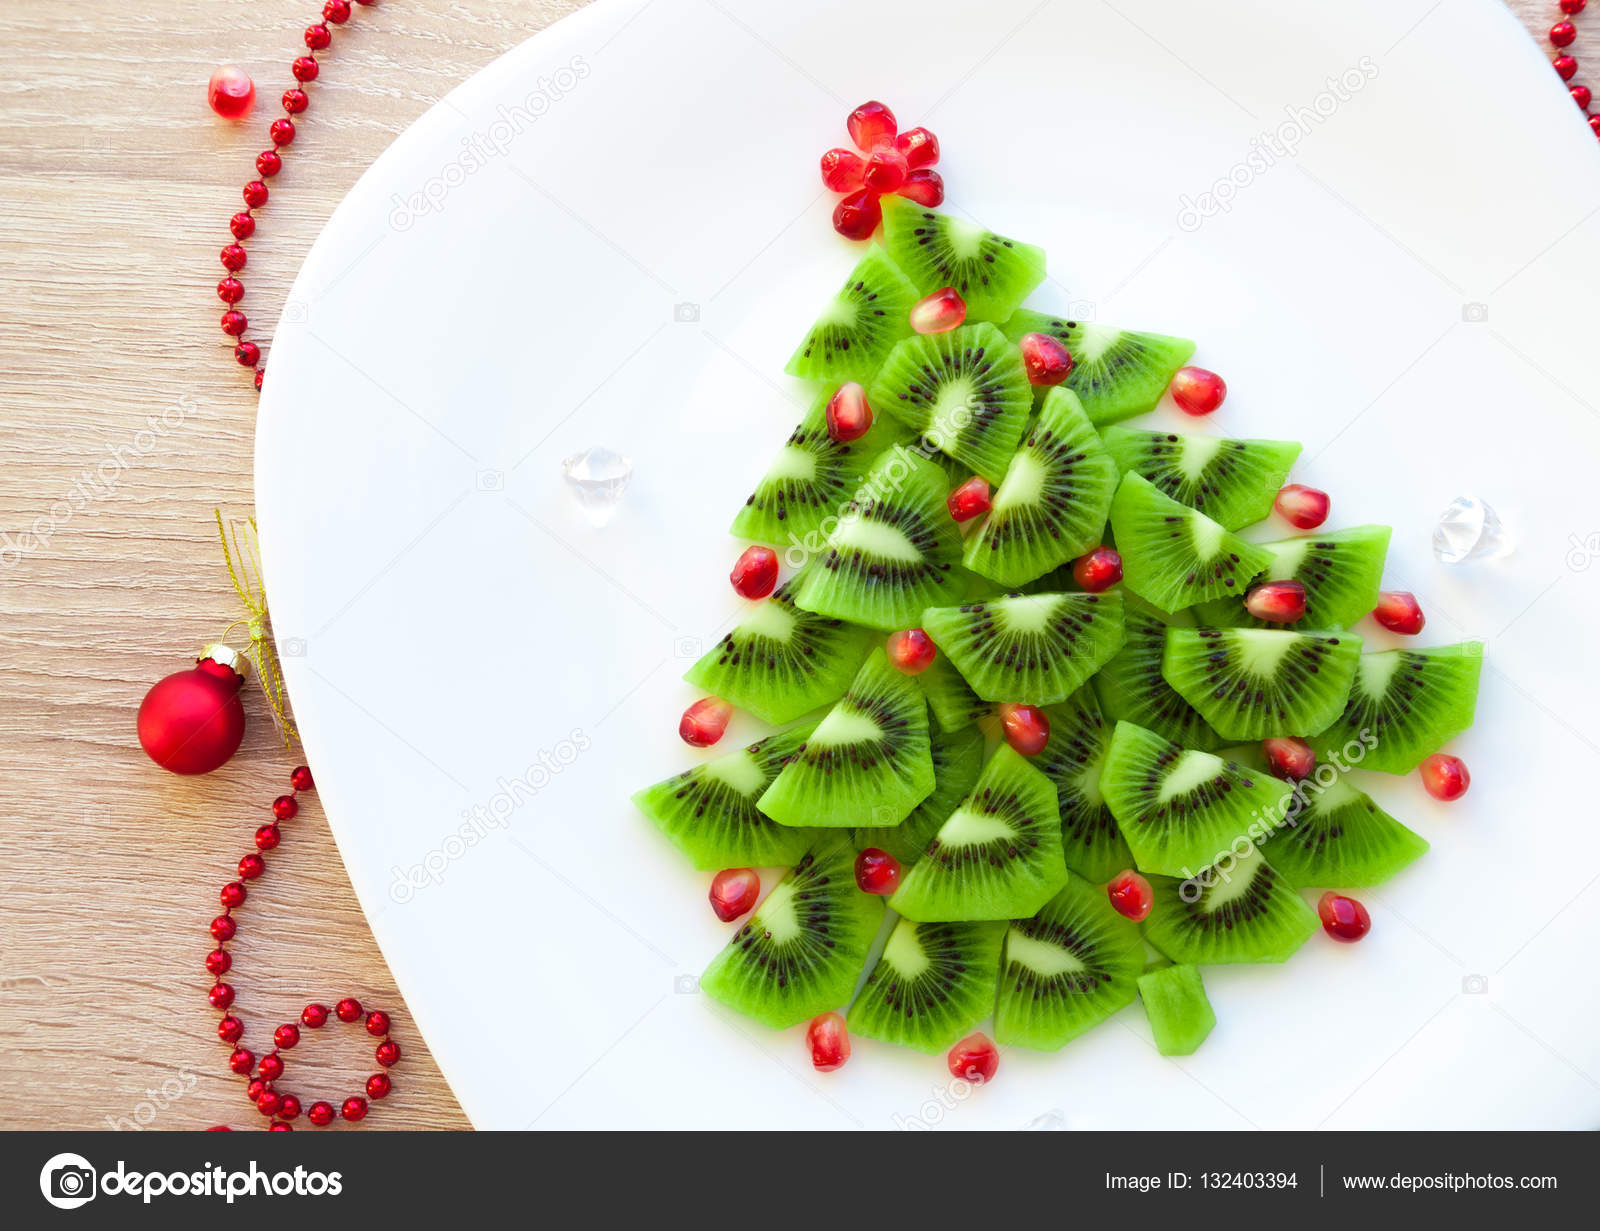 fruit kiwi christmas tree new year food background top view blank space for text